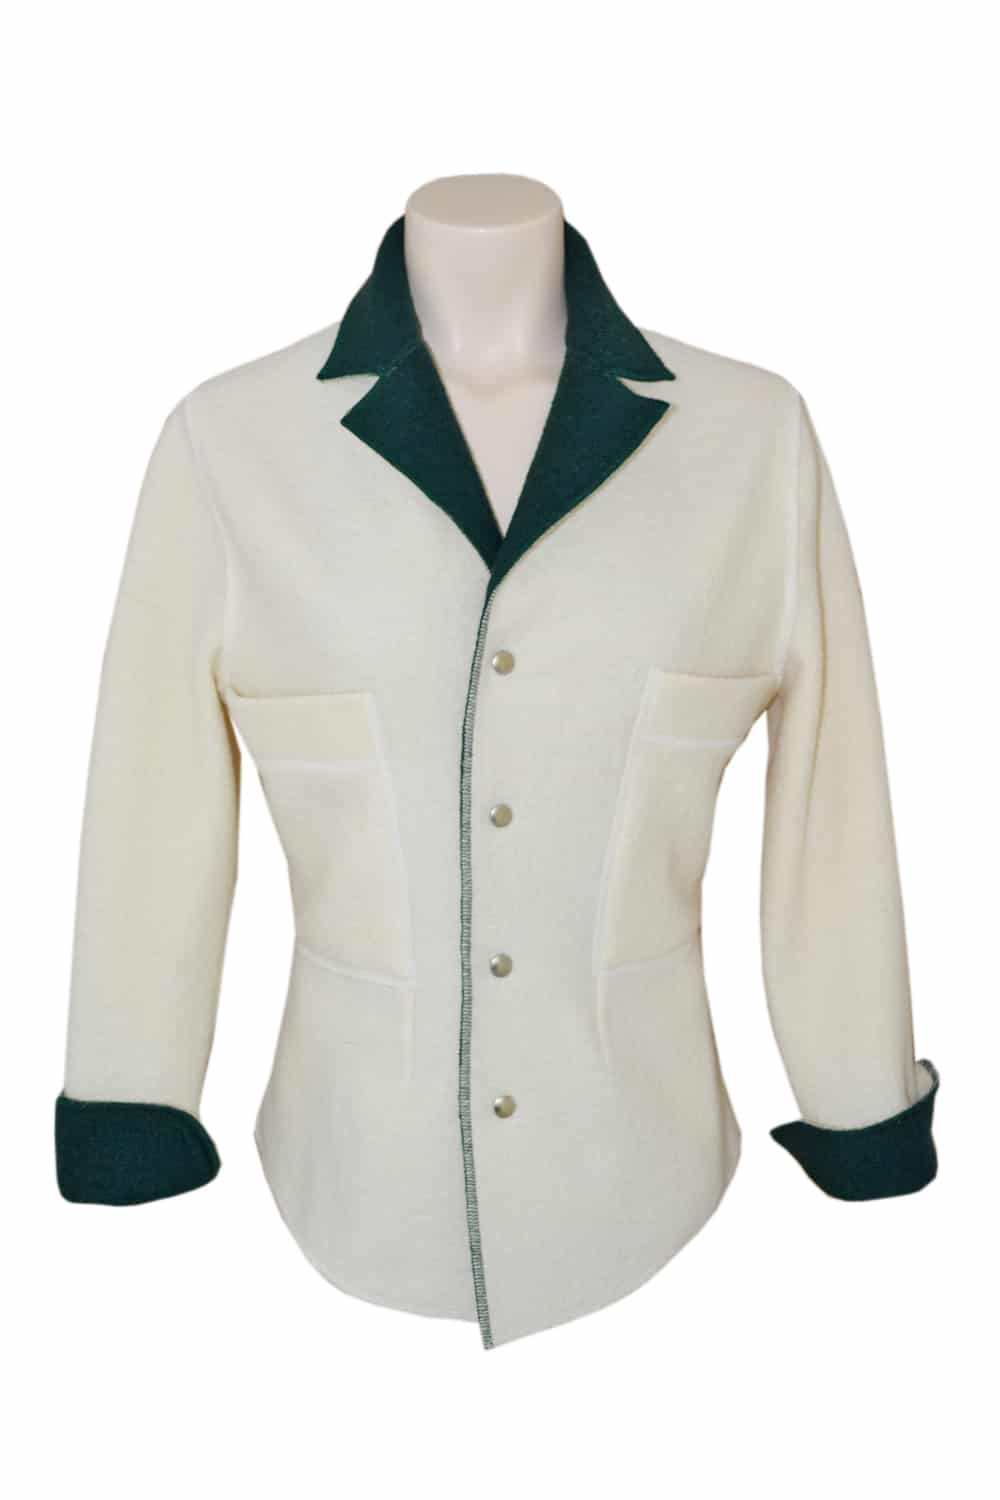 Two-tone boiled wool jacket shirt on the front and flanked by two large patch pockets on the chest.